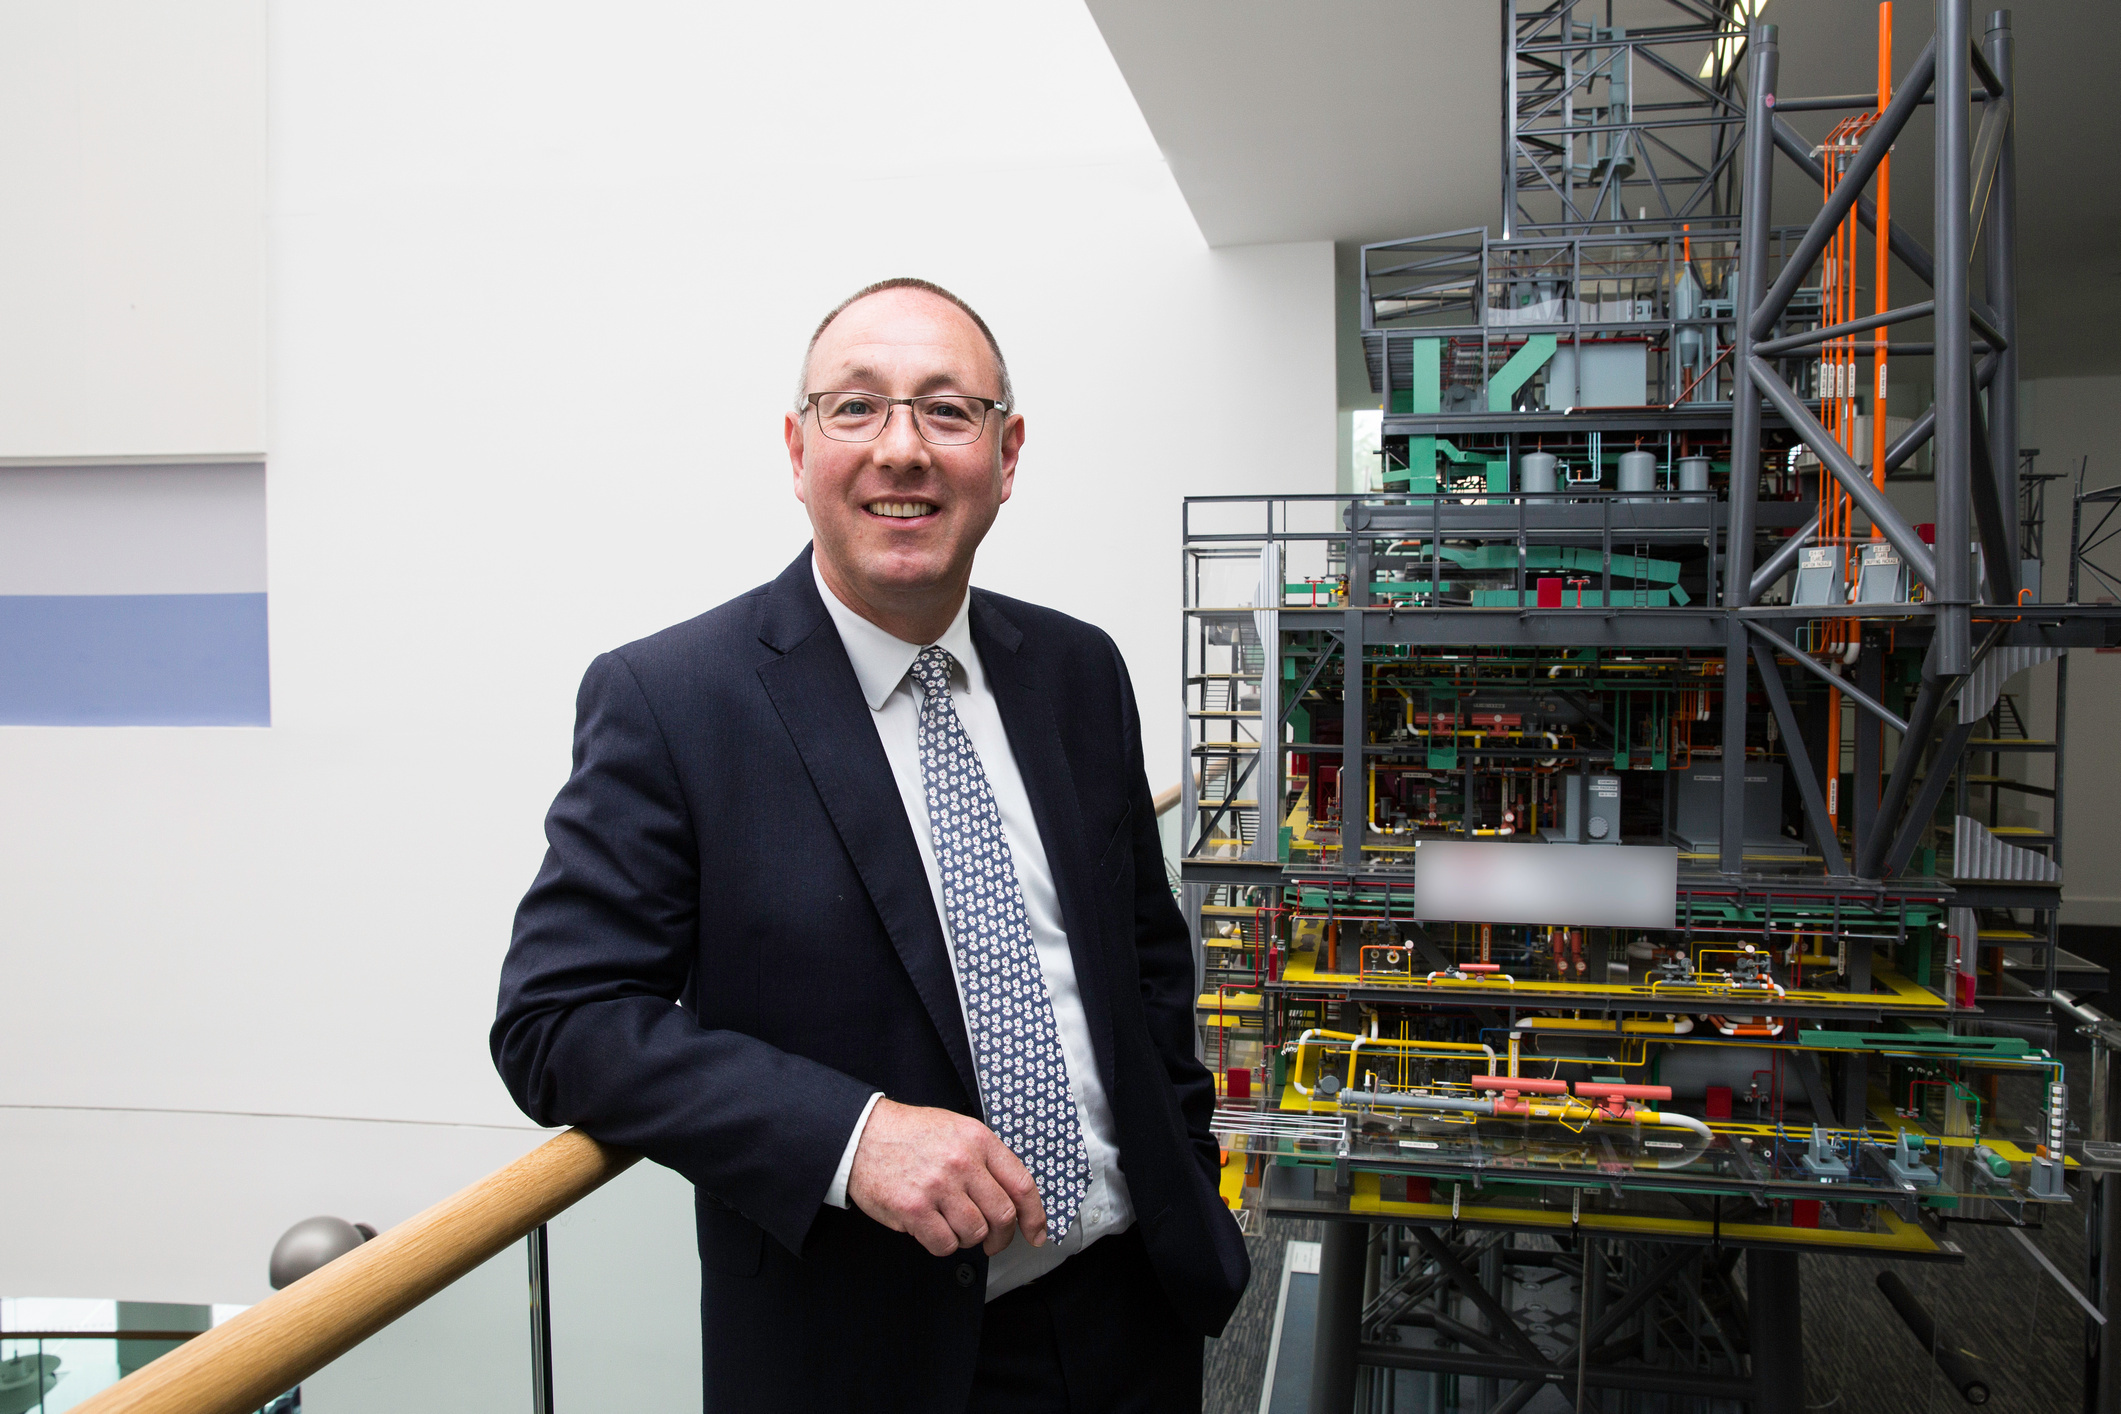 Paul de Leeuw, director of RGU's Oil and Gas Institute